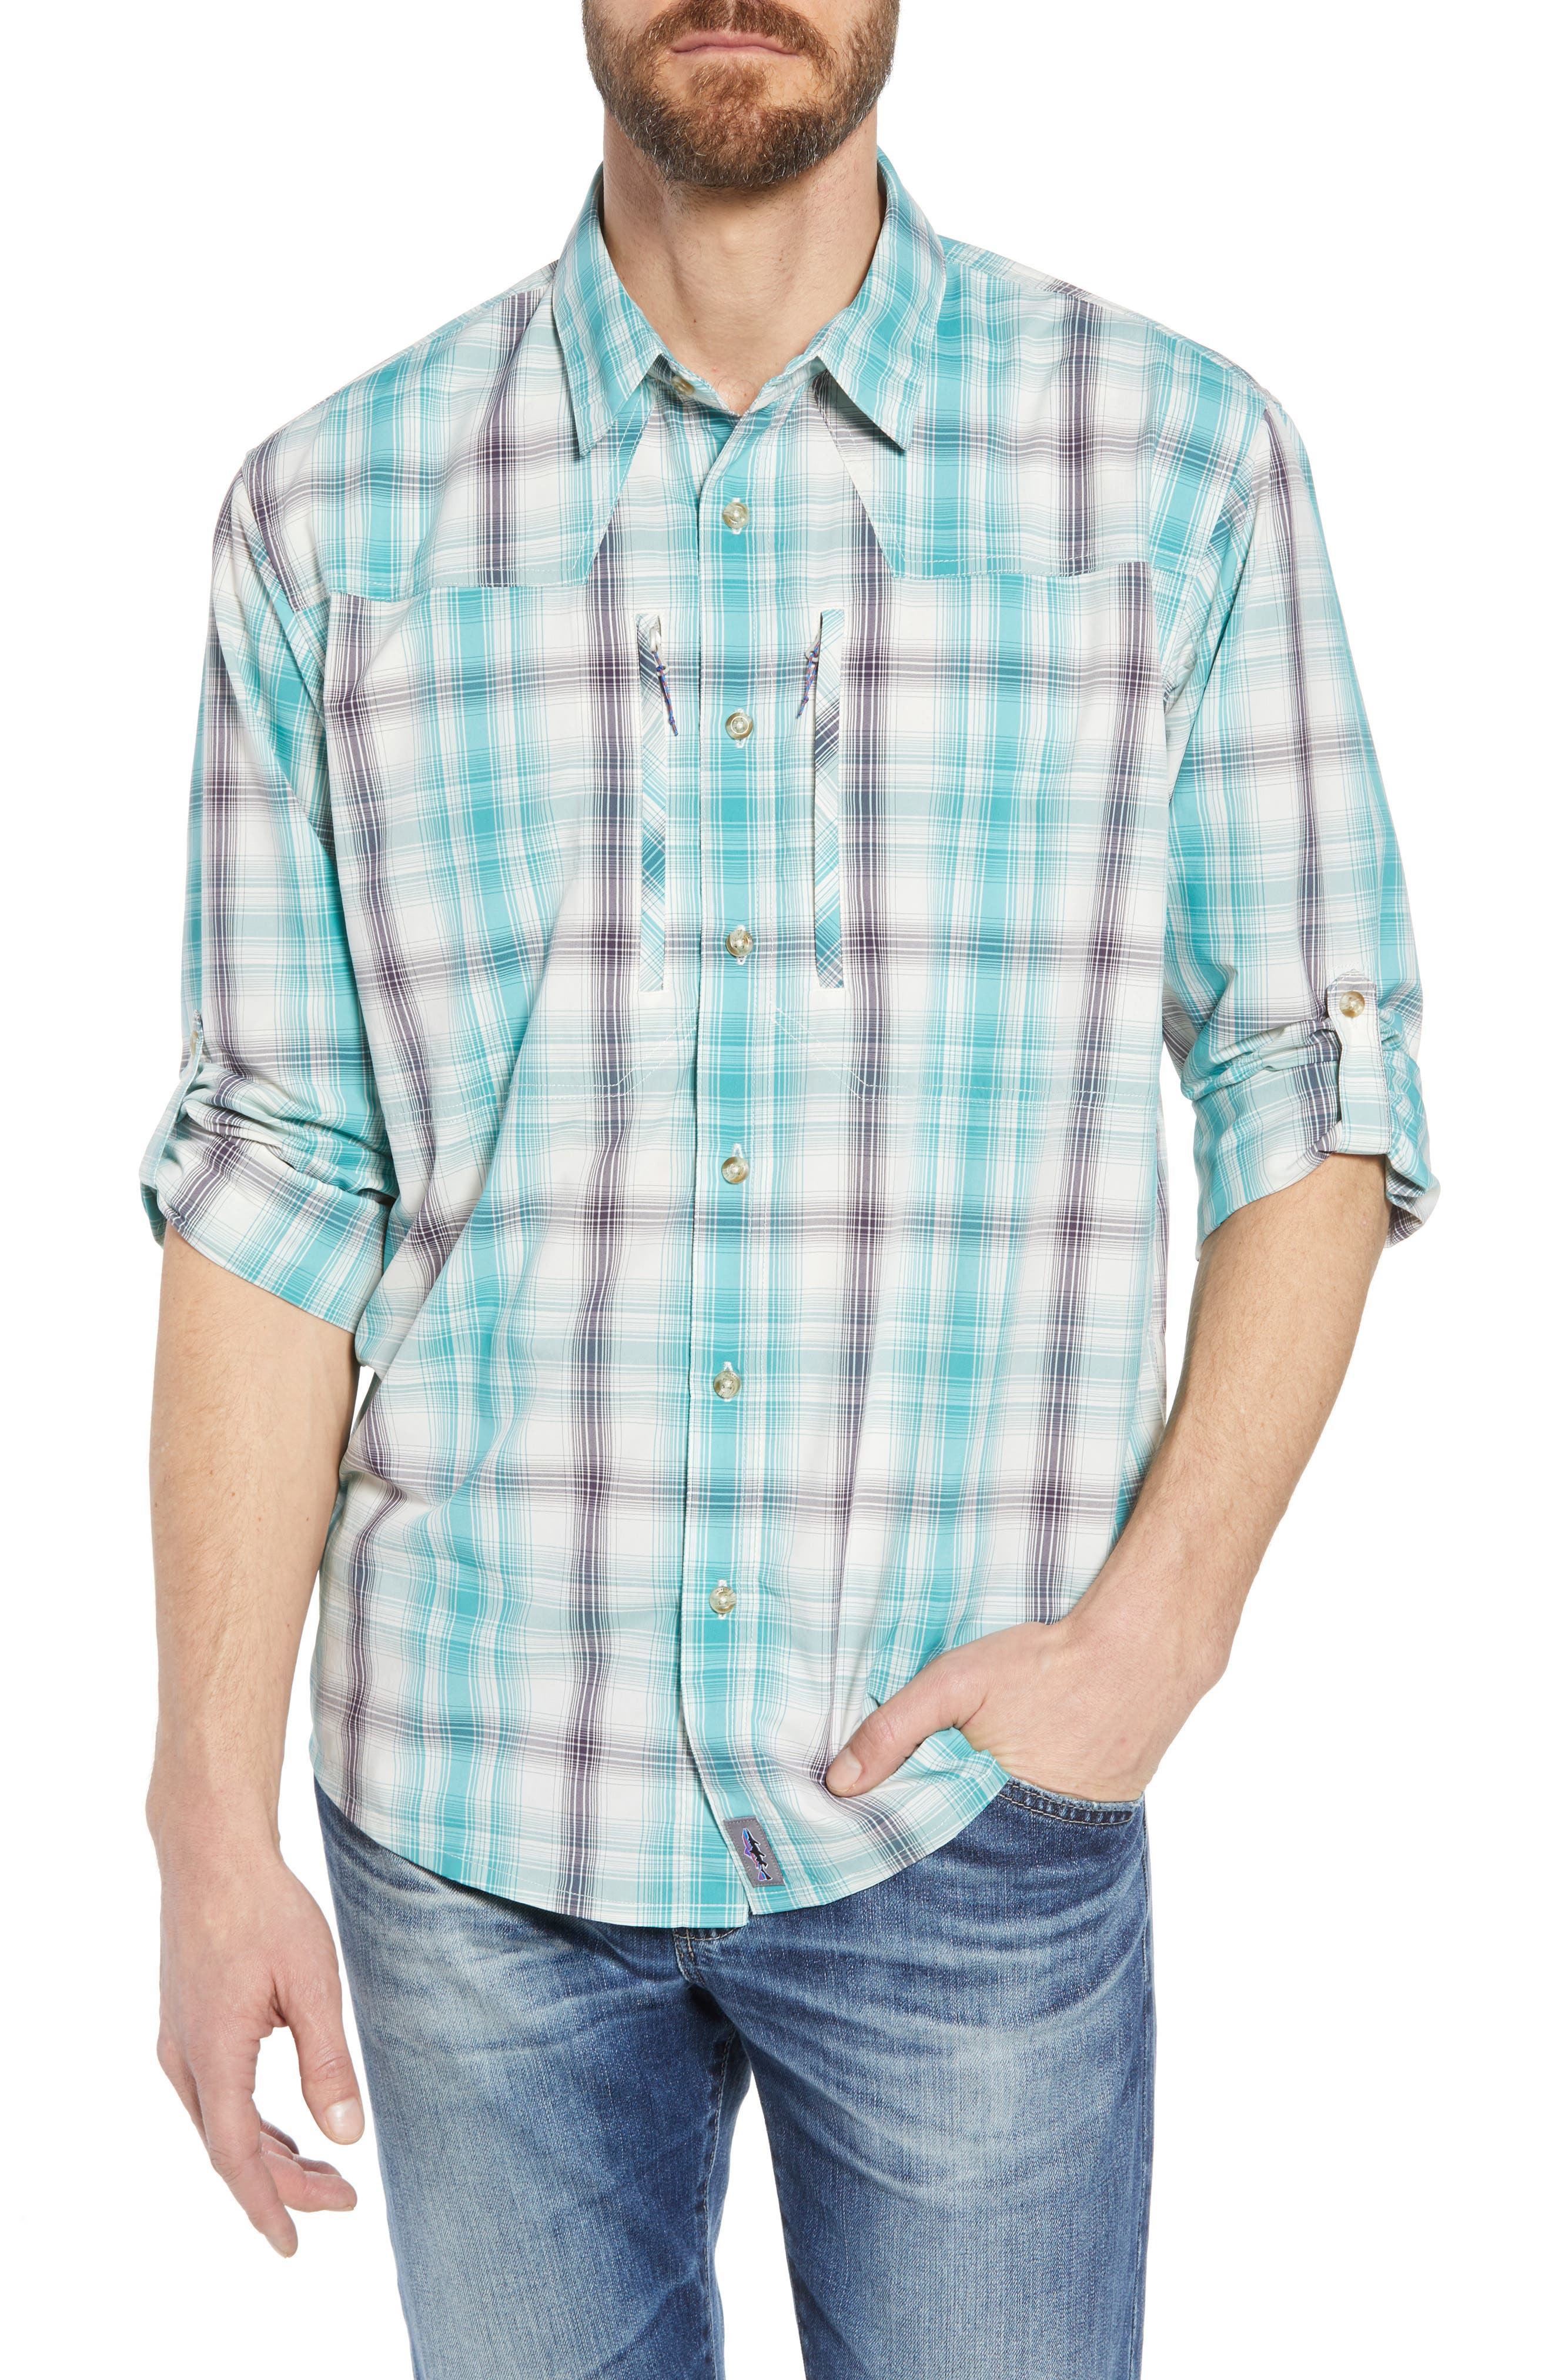 Regular Fit Plaid Sport Shirt,                         Main,                         color, King Swing/ Piton Purple